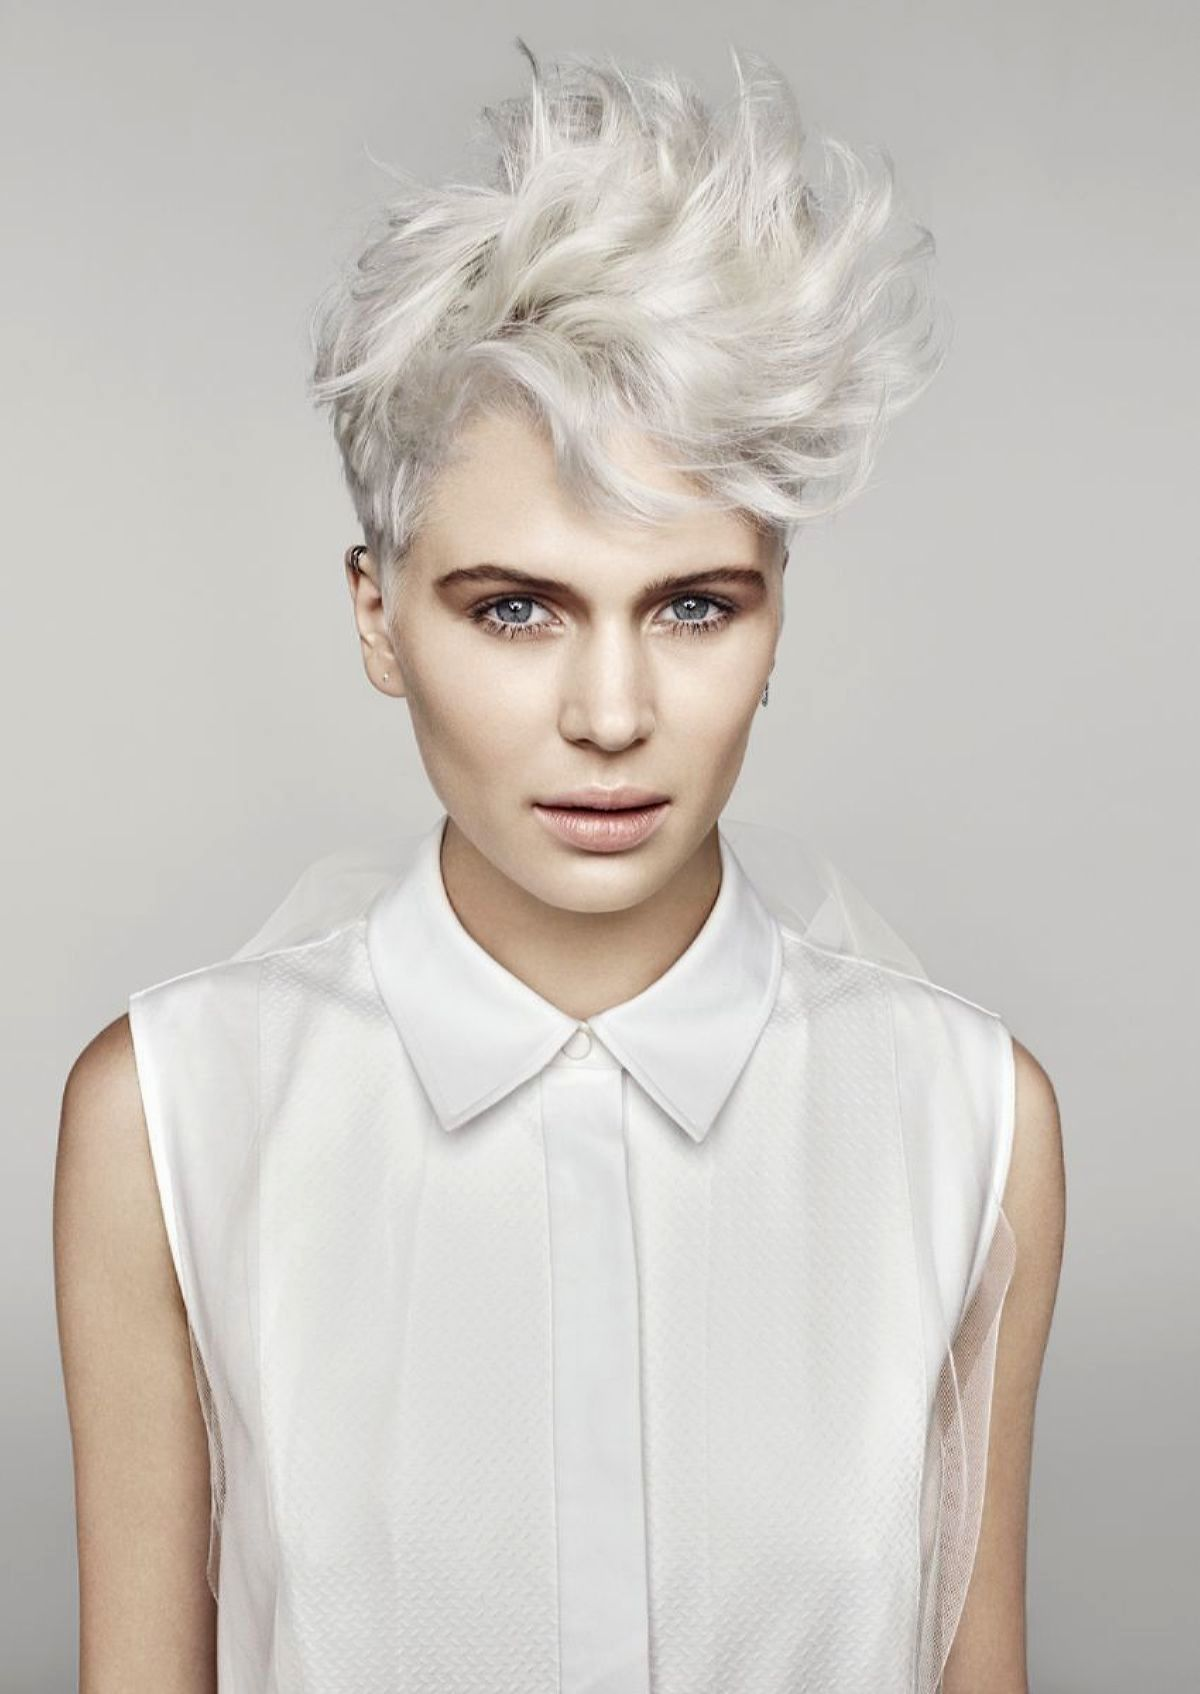 Wonderfully Breathtaking Ladies Short Hair Collection - Lovely Ladies Short Haircut Picture